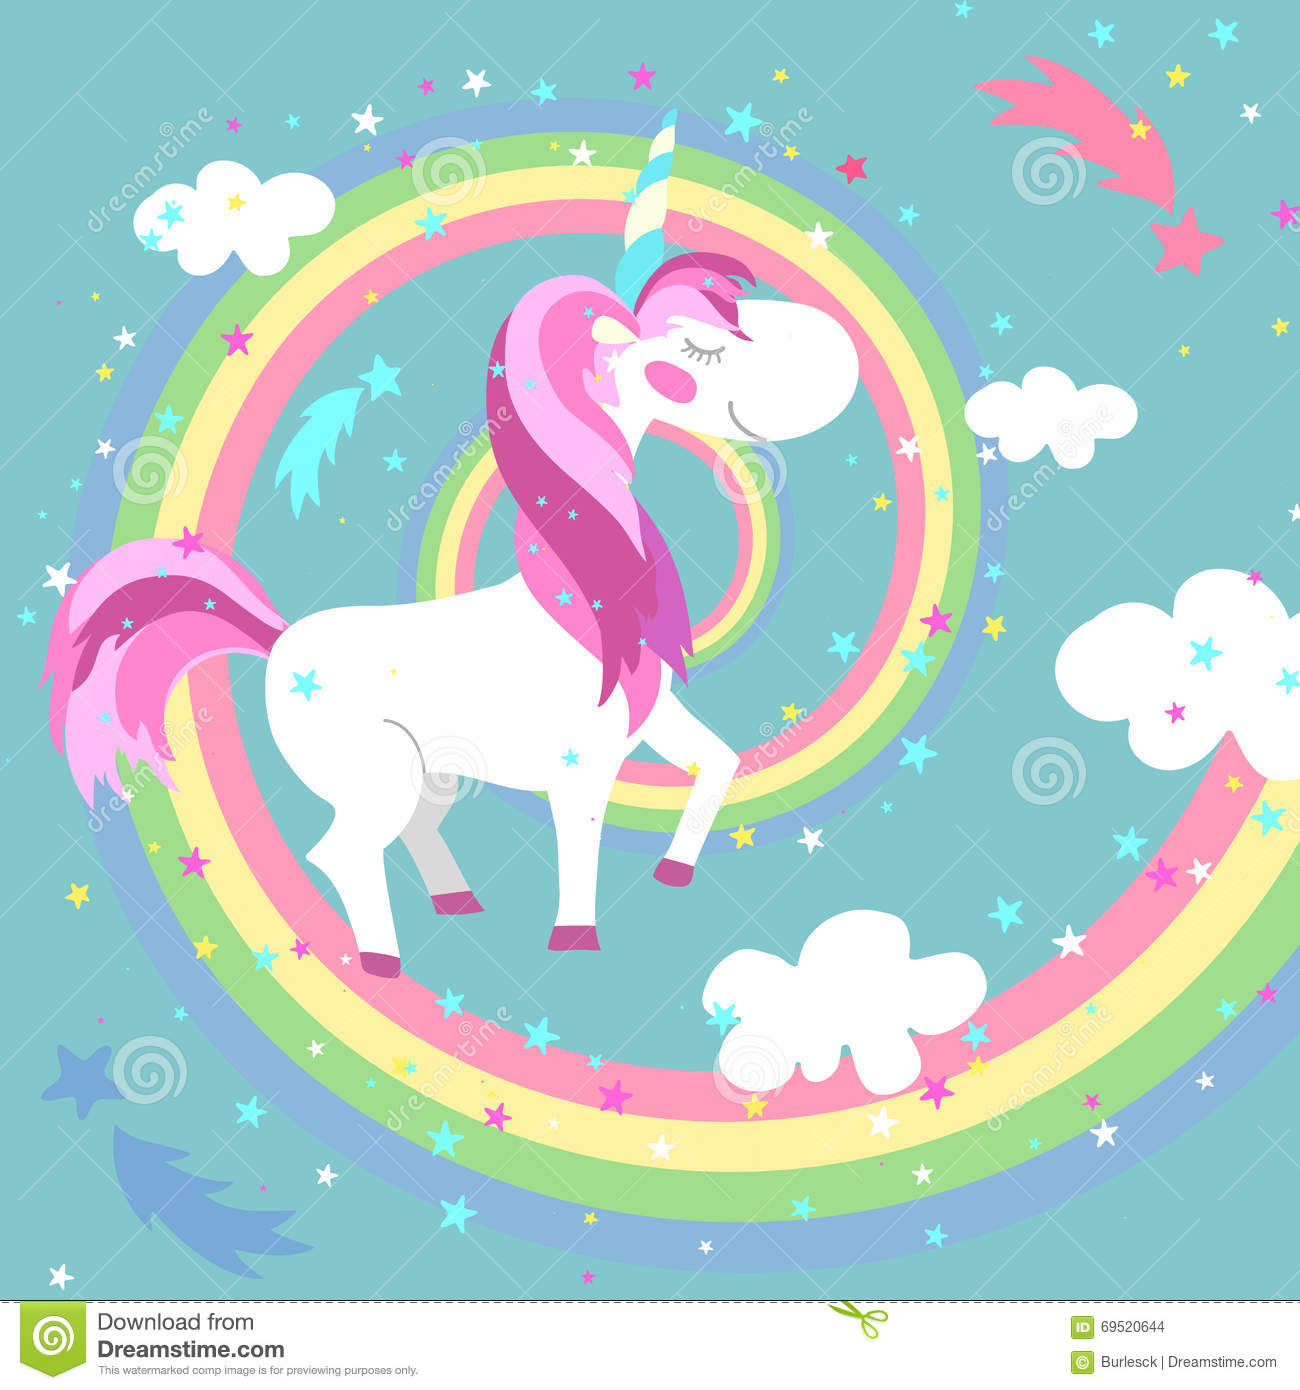 Unicorn Vector Illustration Arcobaleno colorato